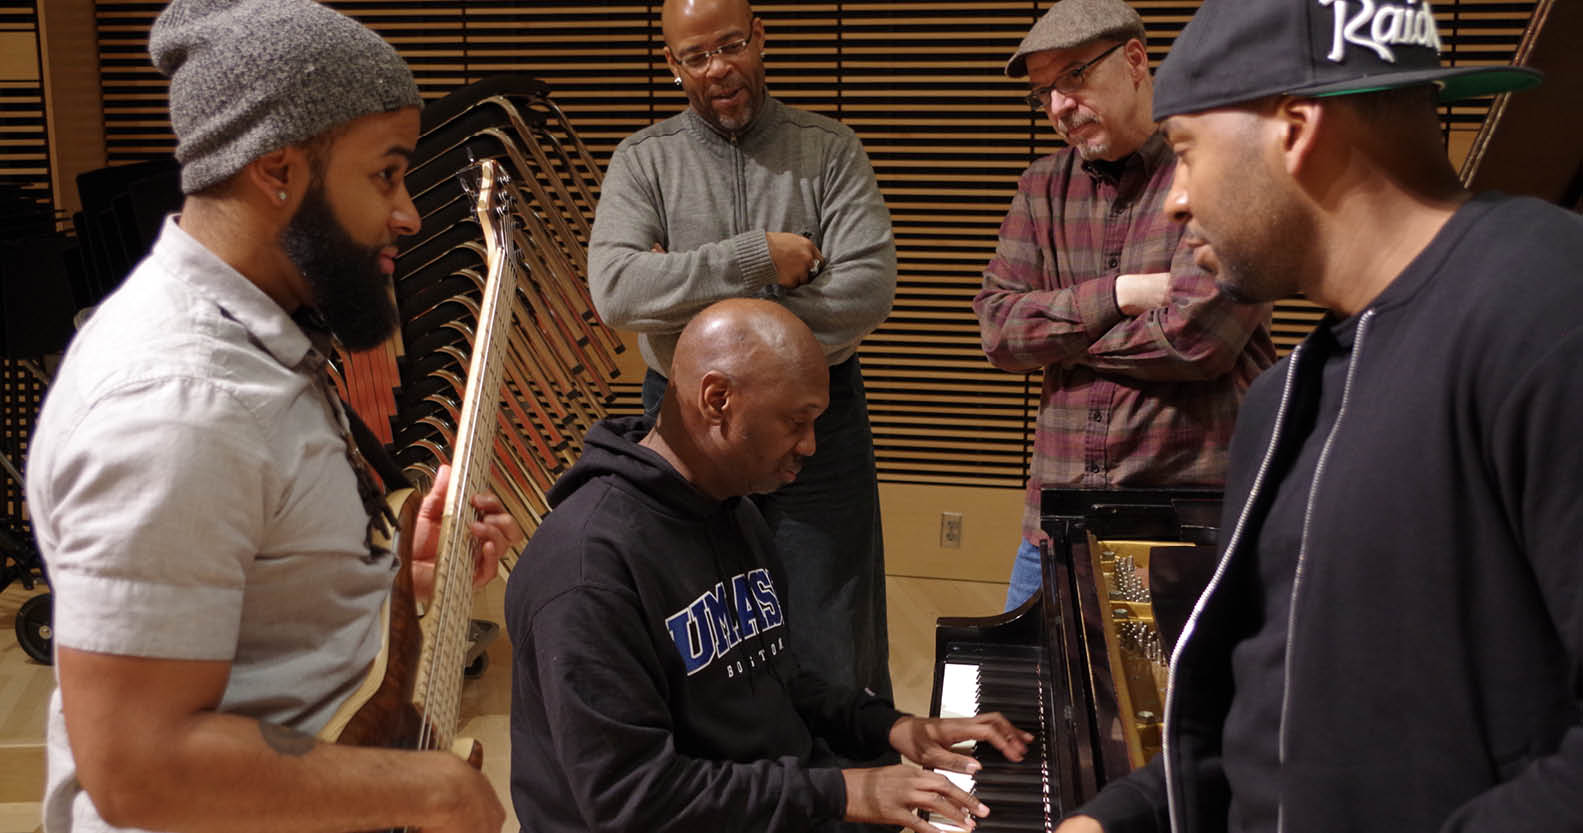 The UMass Boston Trio (from left, Domenic Davis, Anthony Martin, and Brian Hull) with Dennis Montgomery III and Peter Janson